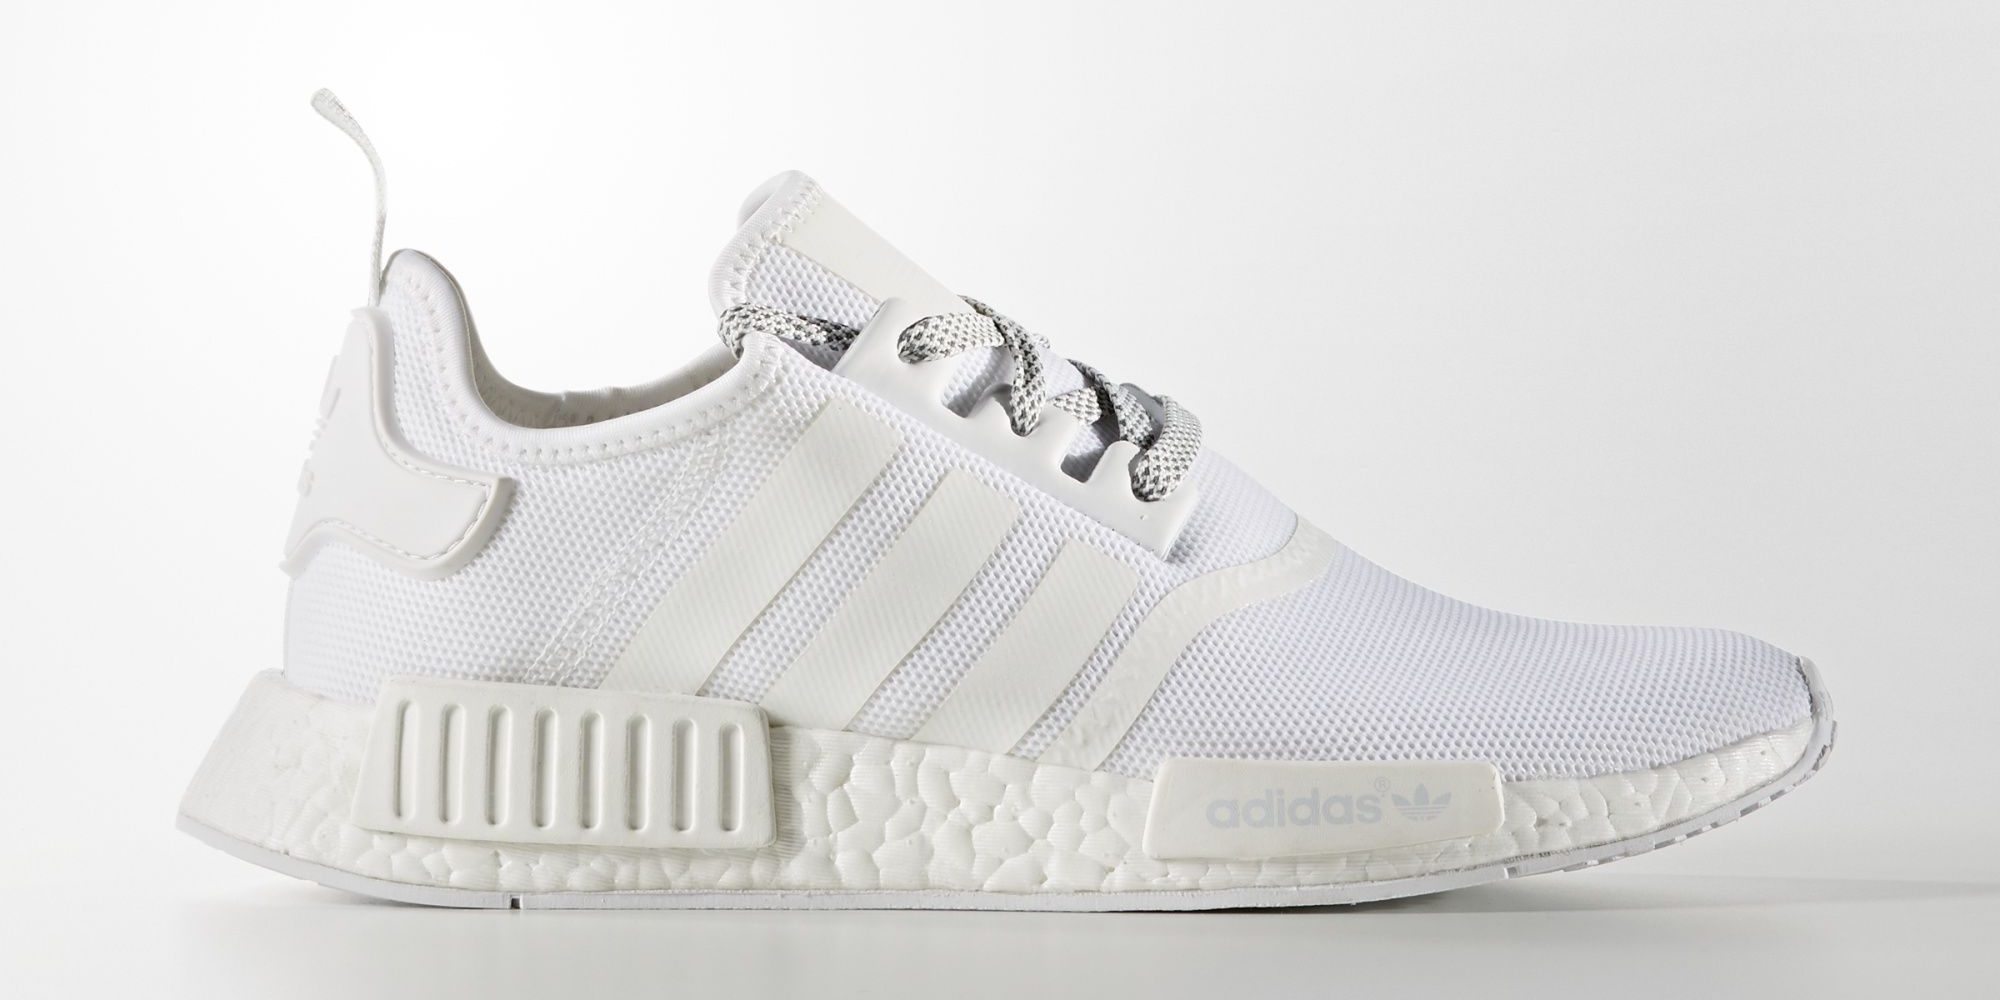 l'adidas nmd r1 runner è disponibile in diverse colorways